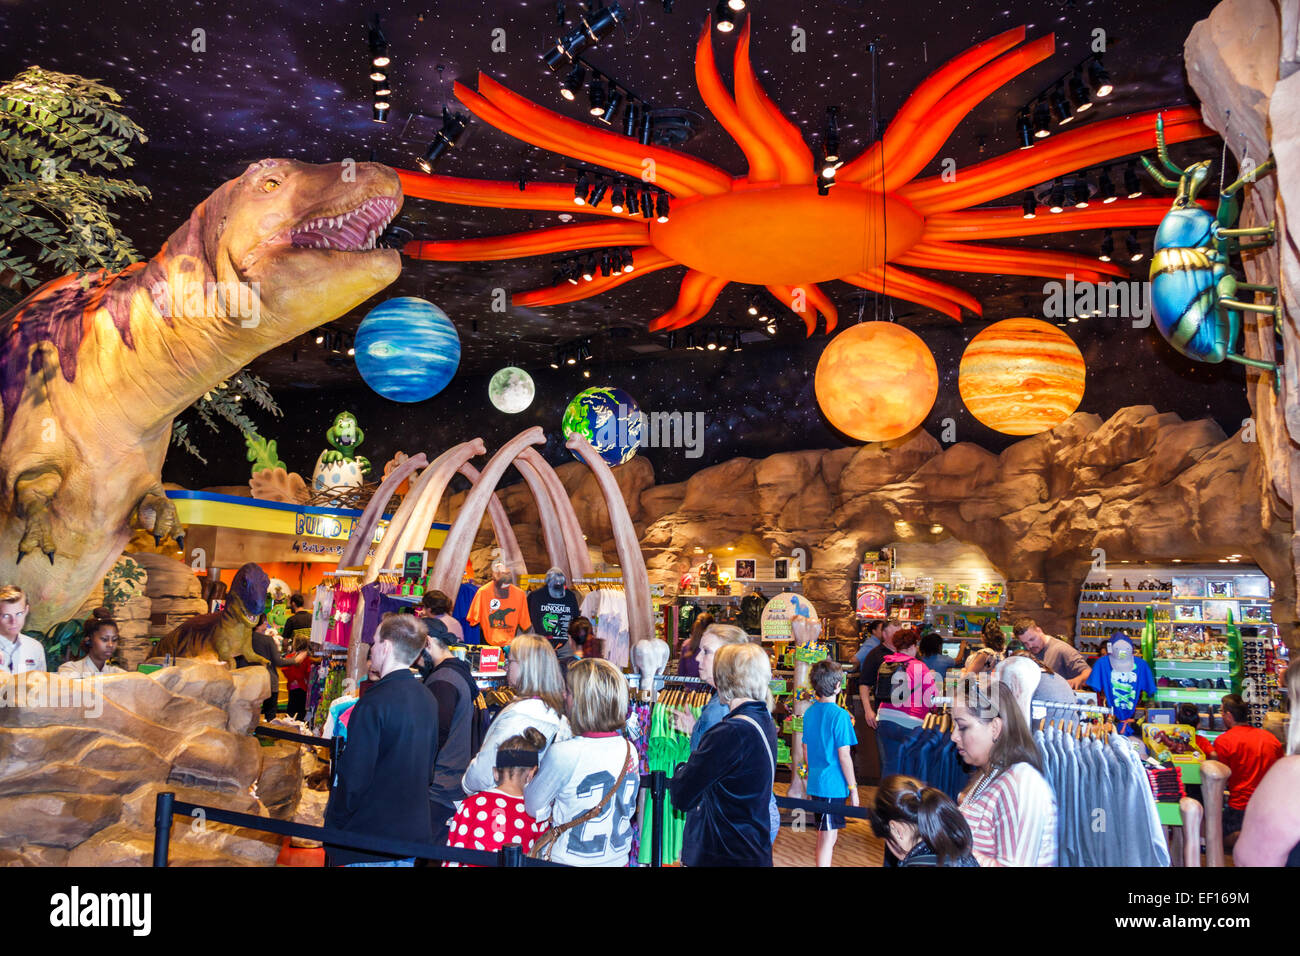 Orlando in Florida Lake Buena Vista Downtown Disney shopping intrattenimento pranzo T-Rex ristorante interno dinosauro Immagini Stock